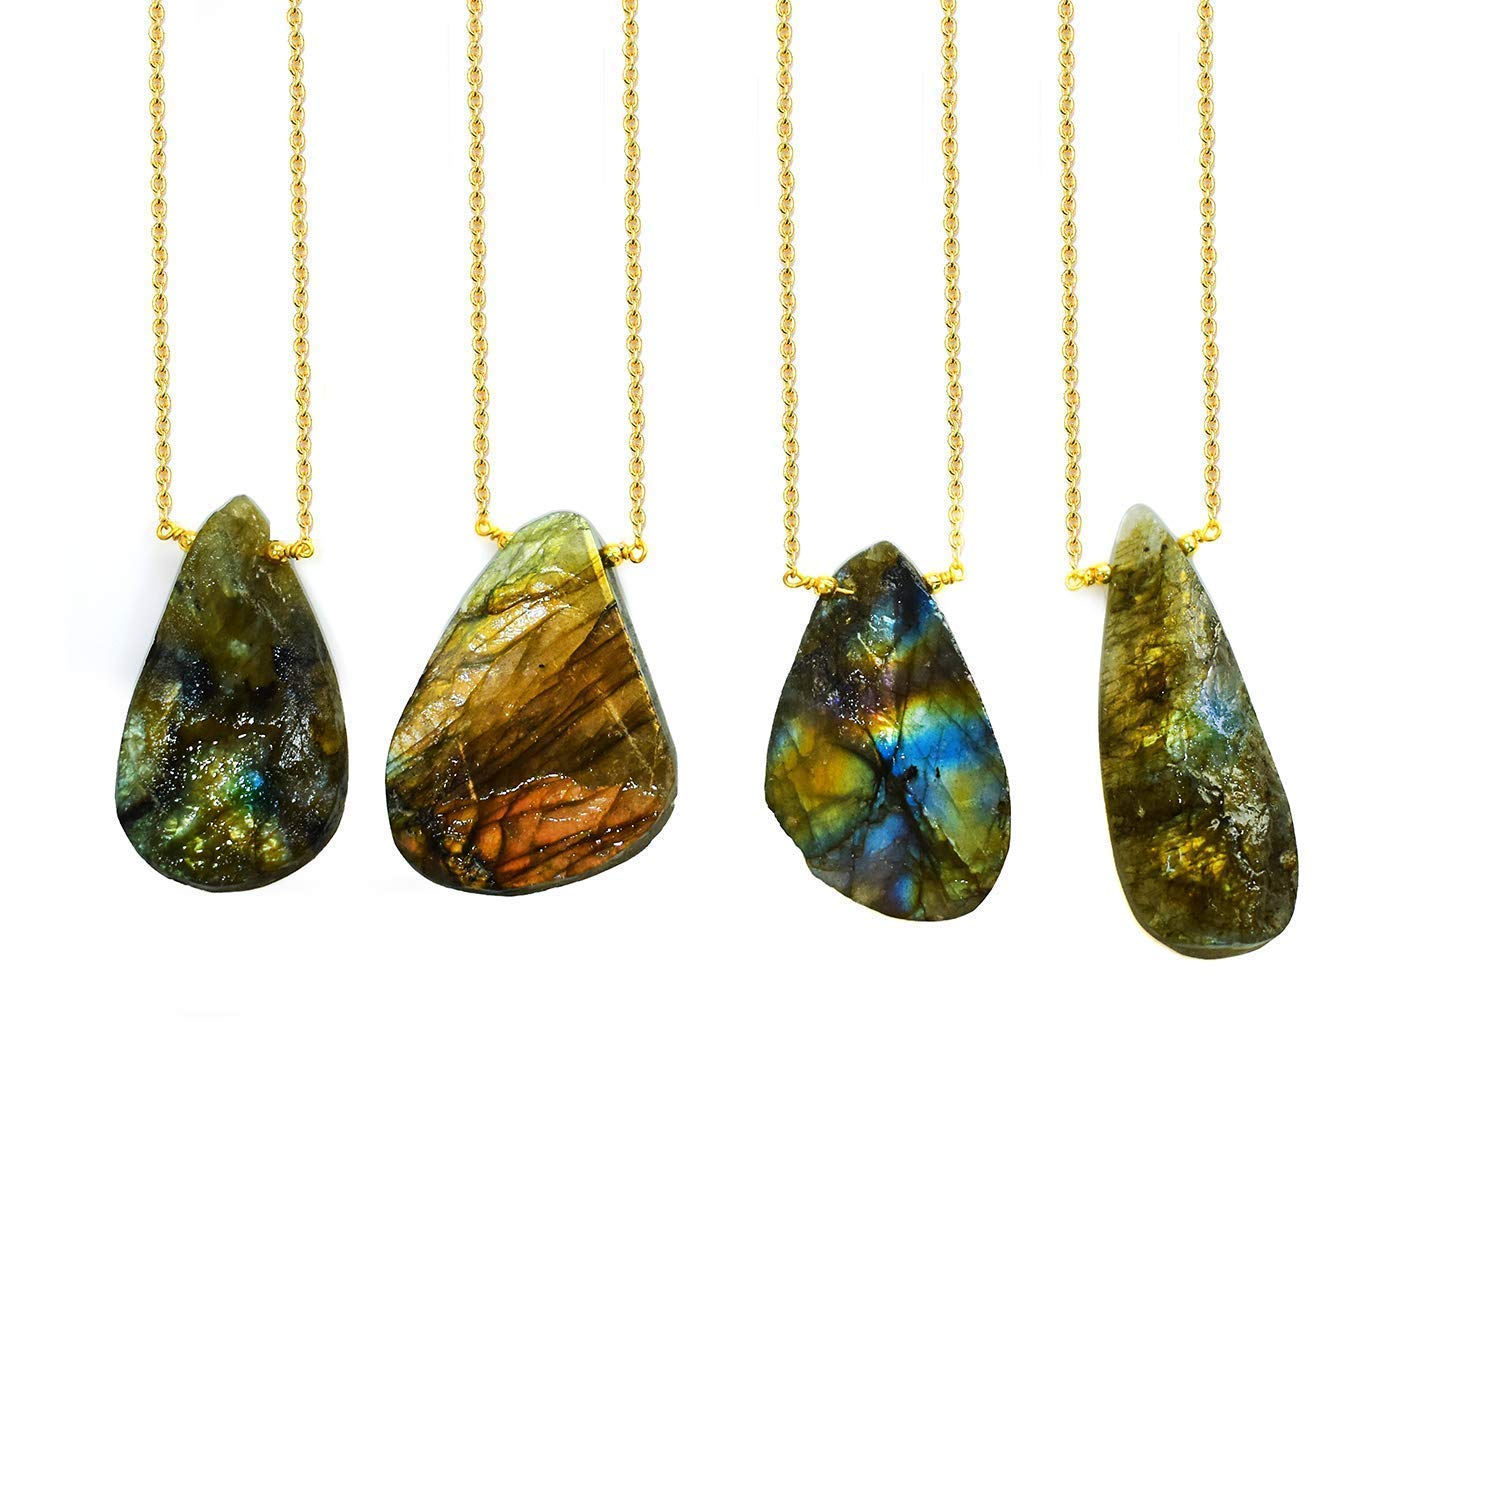 Gempires Natural Raw Labradorite Druzy Natural Crystals Pendant Necklace, Raw Gemstone, Energy Healing Crystals, Birthday, Gift for Her, Gemstone Jewelry 18 inch AAA+ Quality